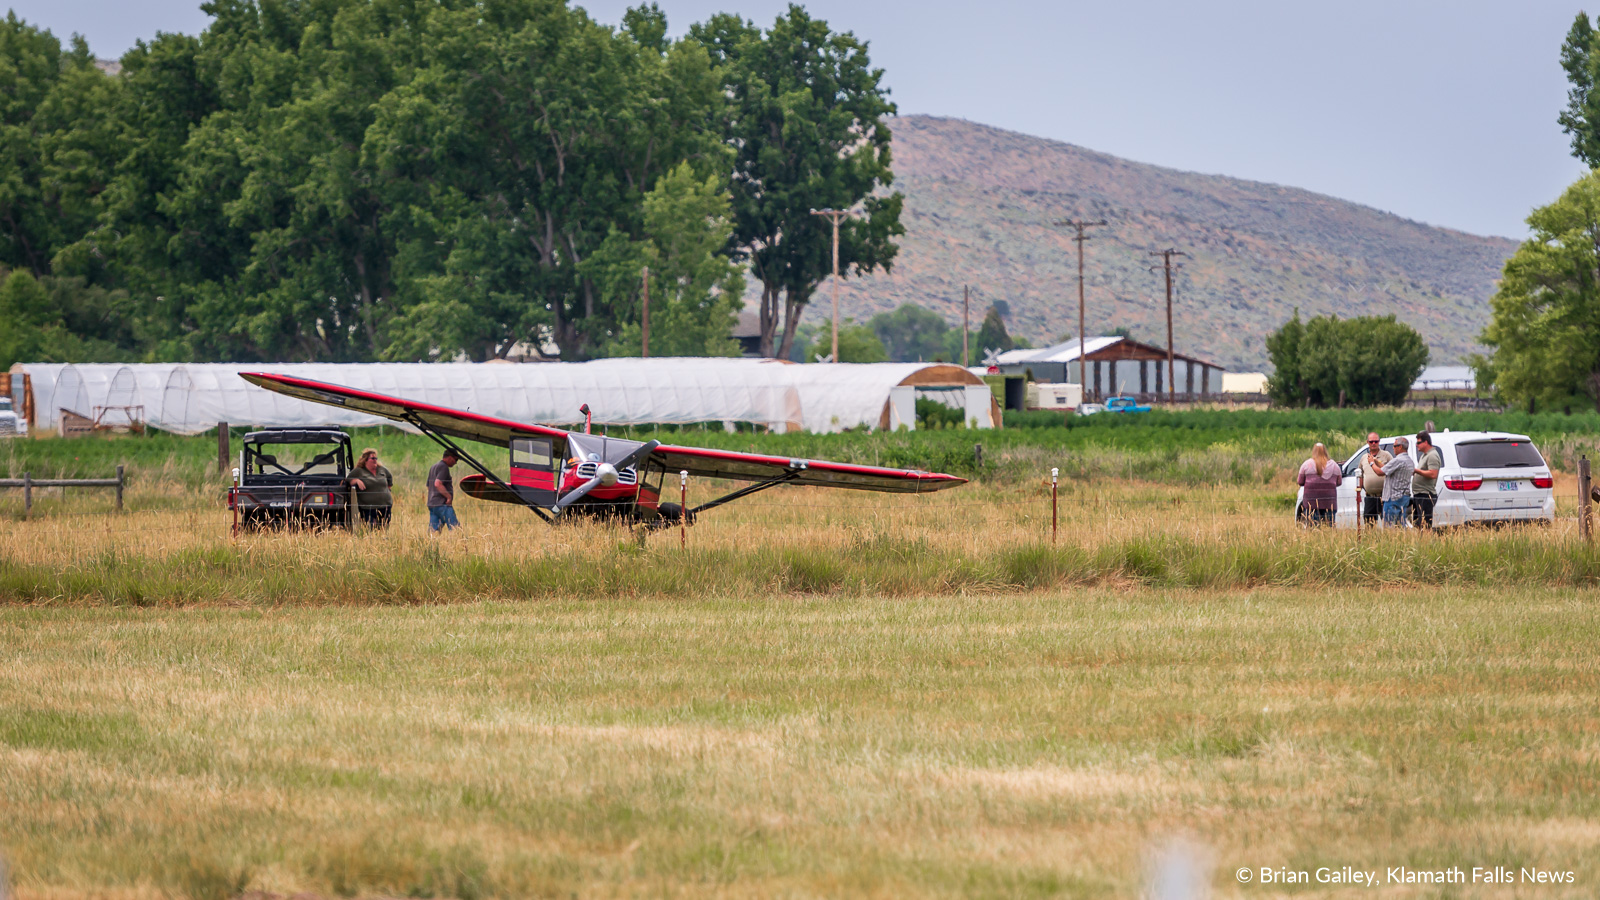 A single engine aircraft crashed in a field south of the Crater Lake - Klamath Regional Airport Tuesday afternoon just after takeoff. July 9, 2019 (Image, Brian Gailey, Klamath Falls News)